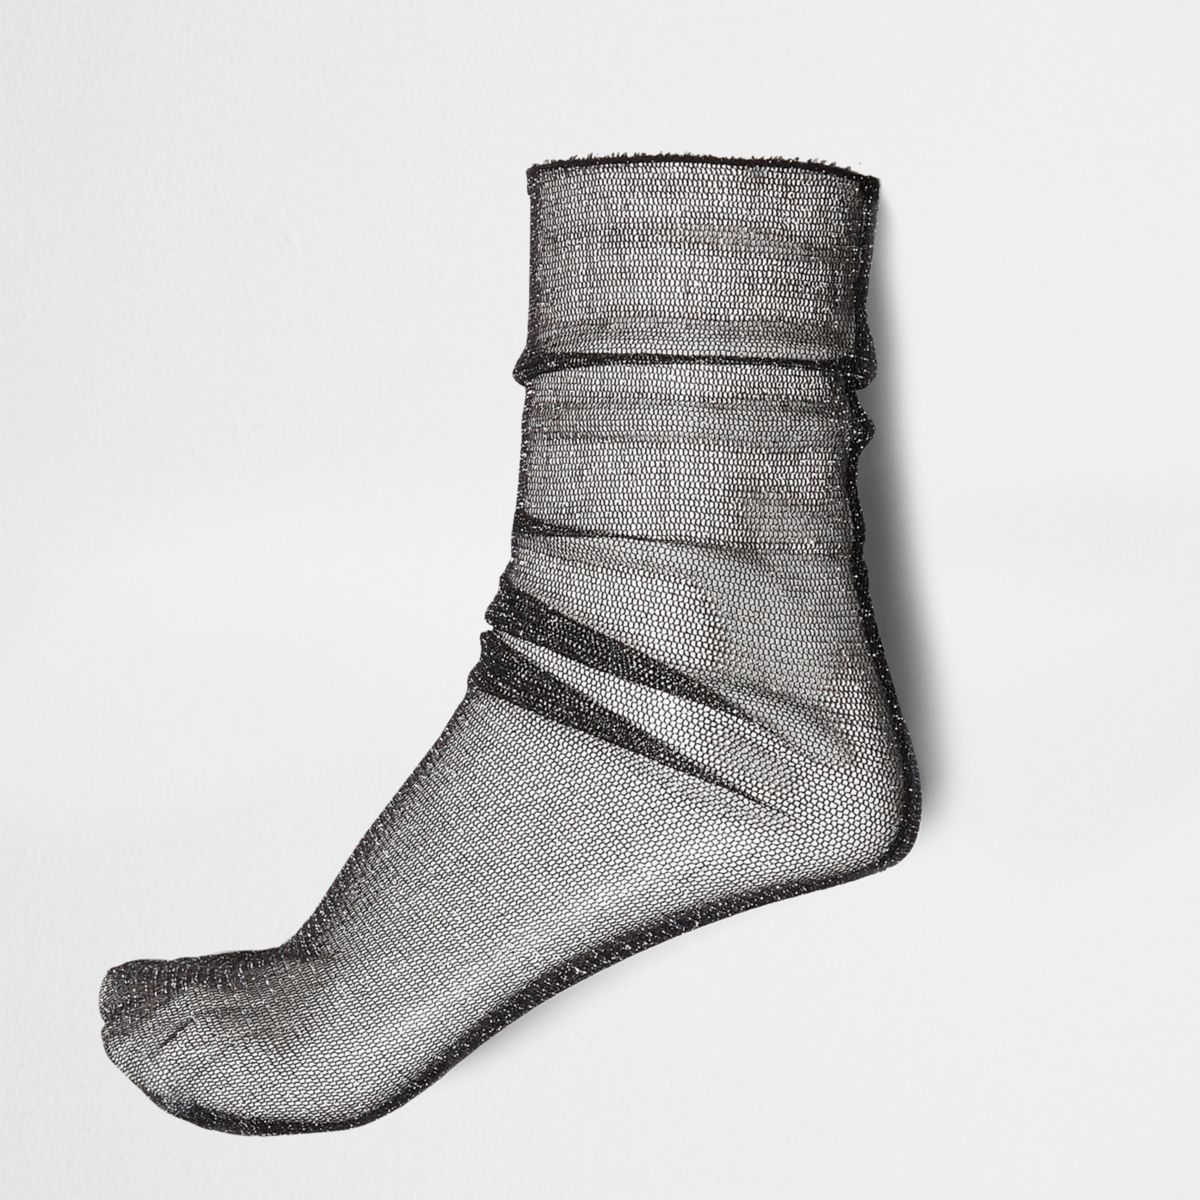 Black lurex stitch sheer socks